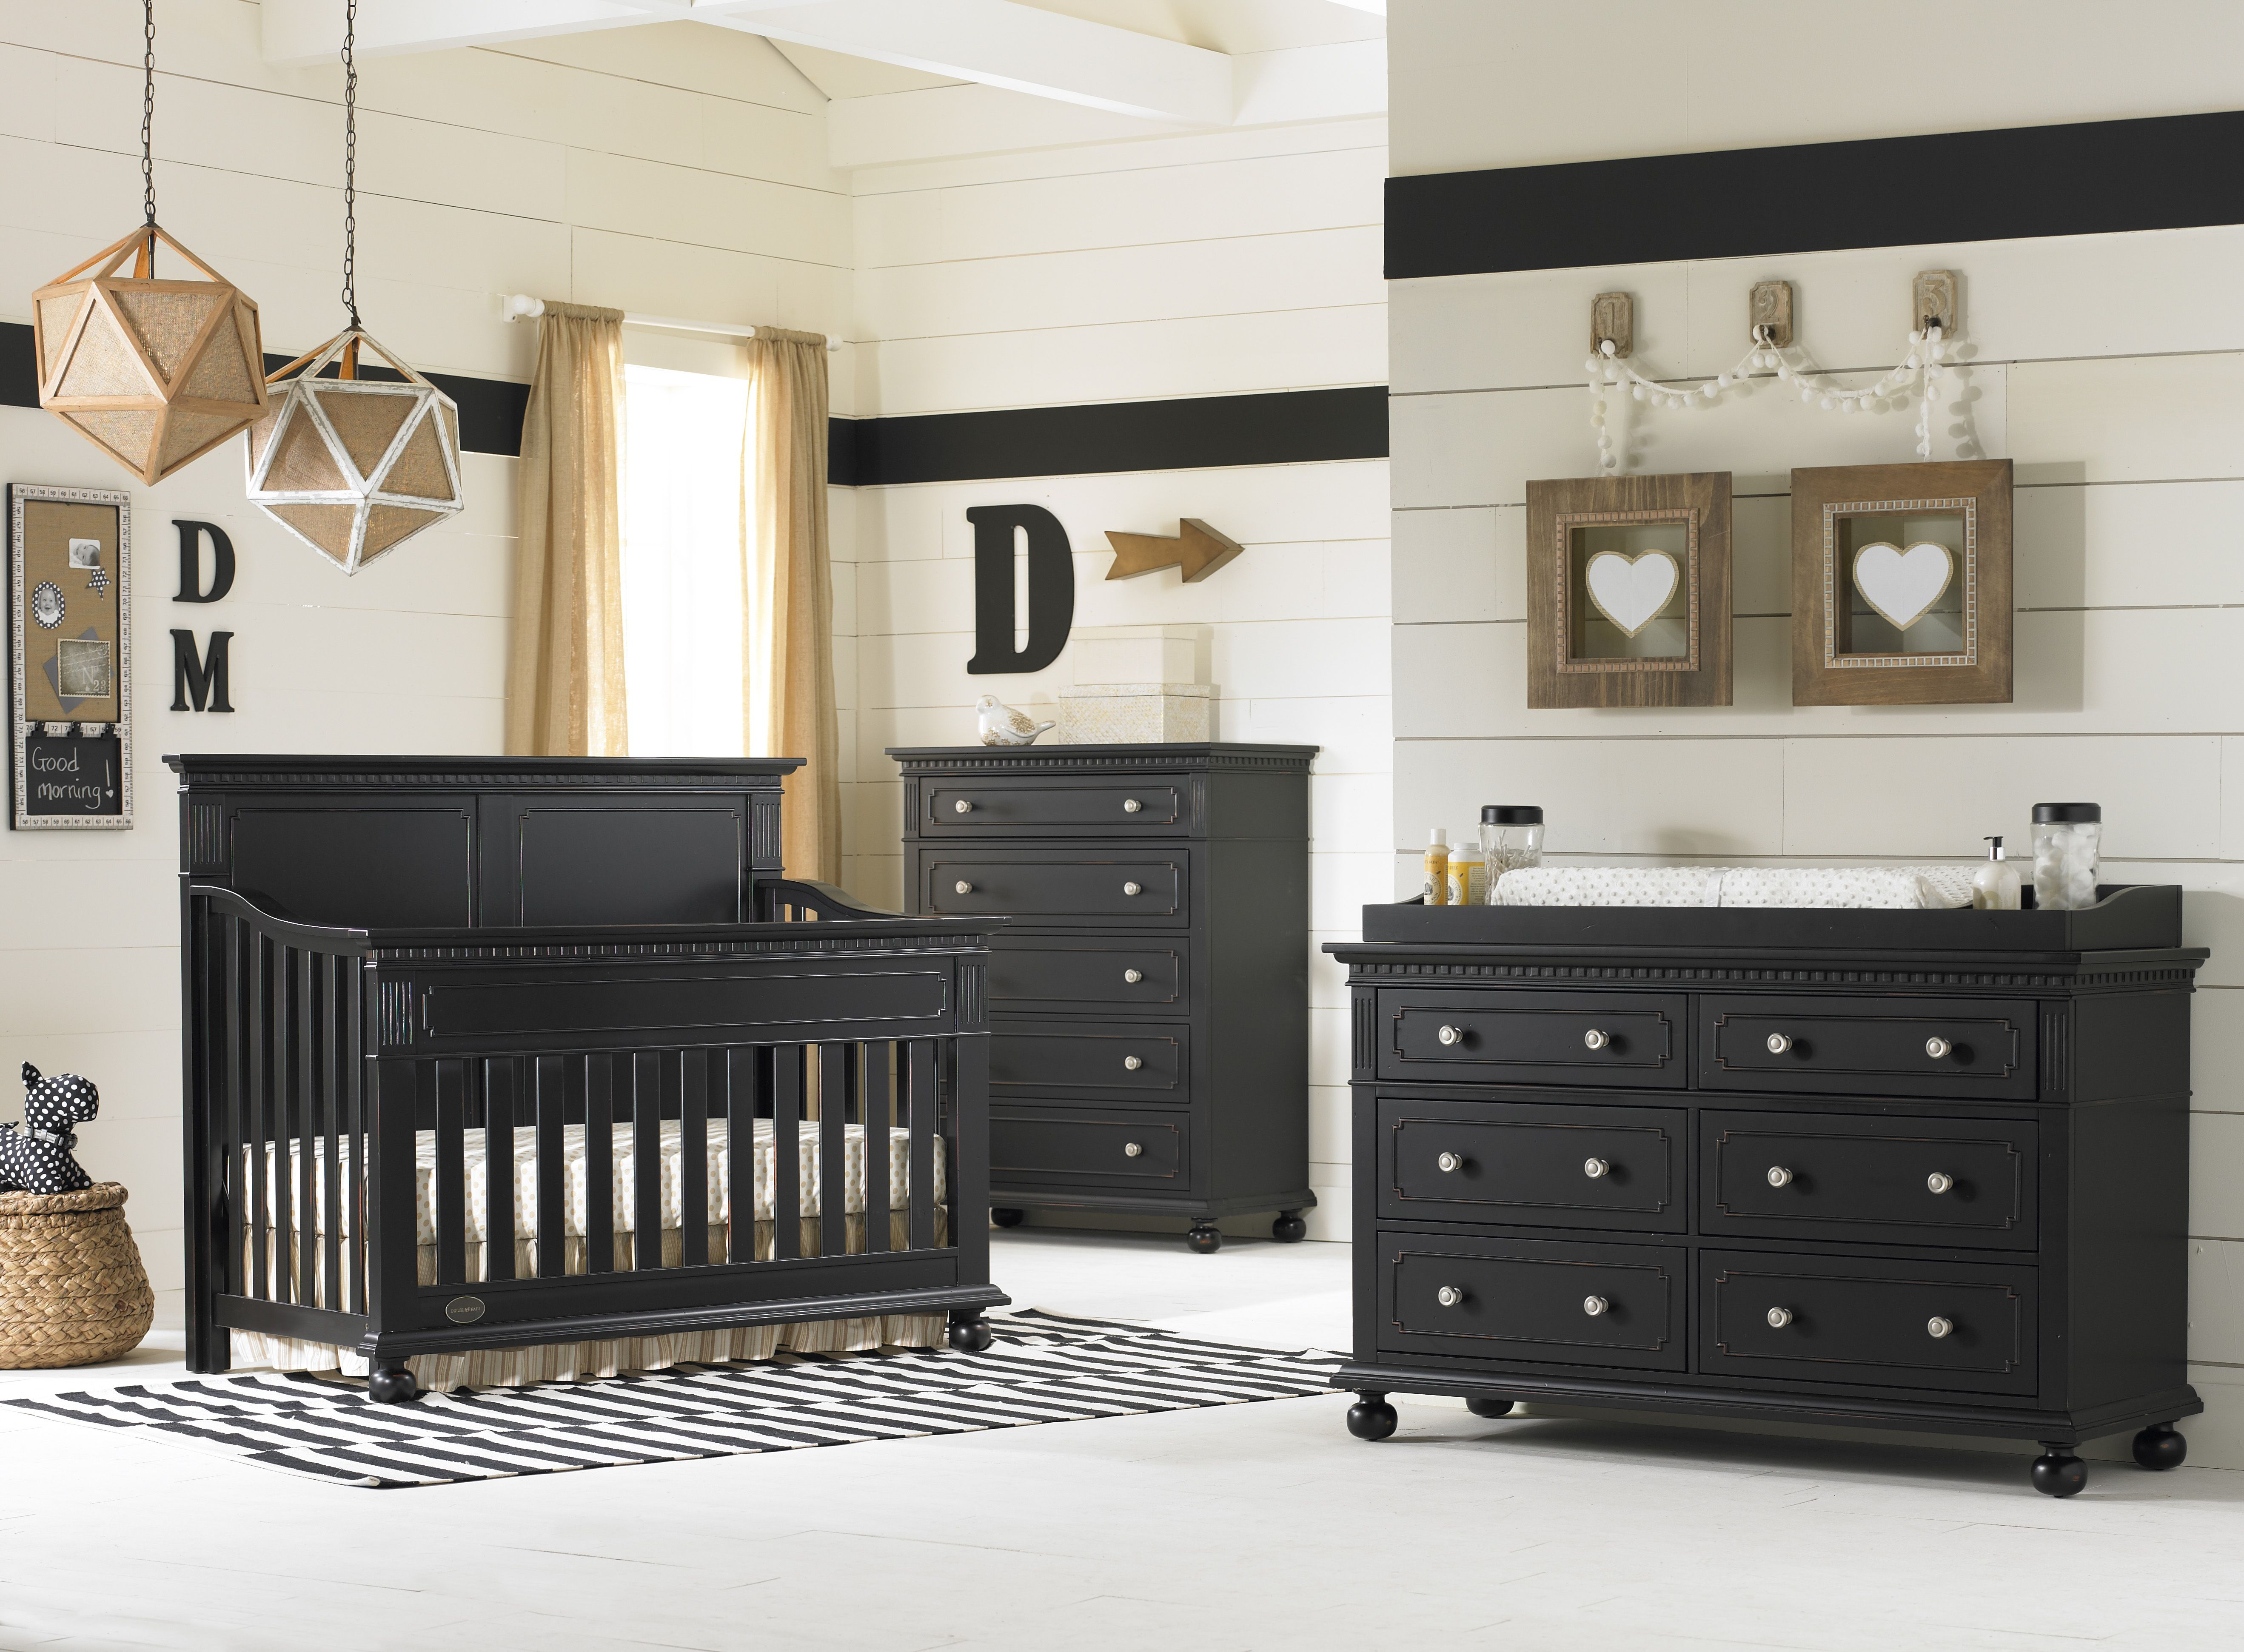 Enter To Win The Naples Full Panel Crib And Double Dresser From Dolci Babi 1500 Value Giveaway